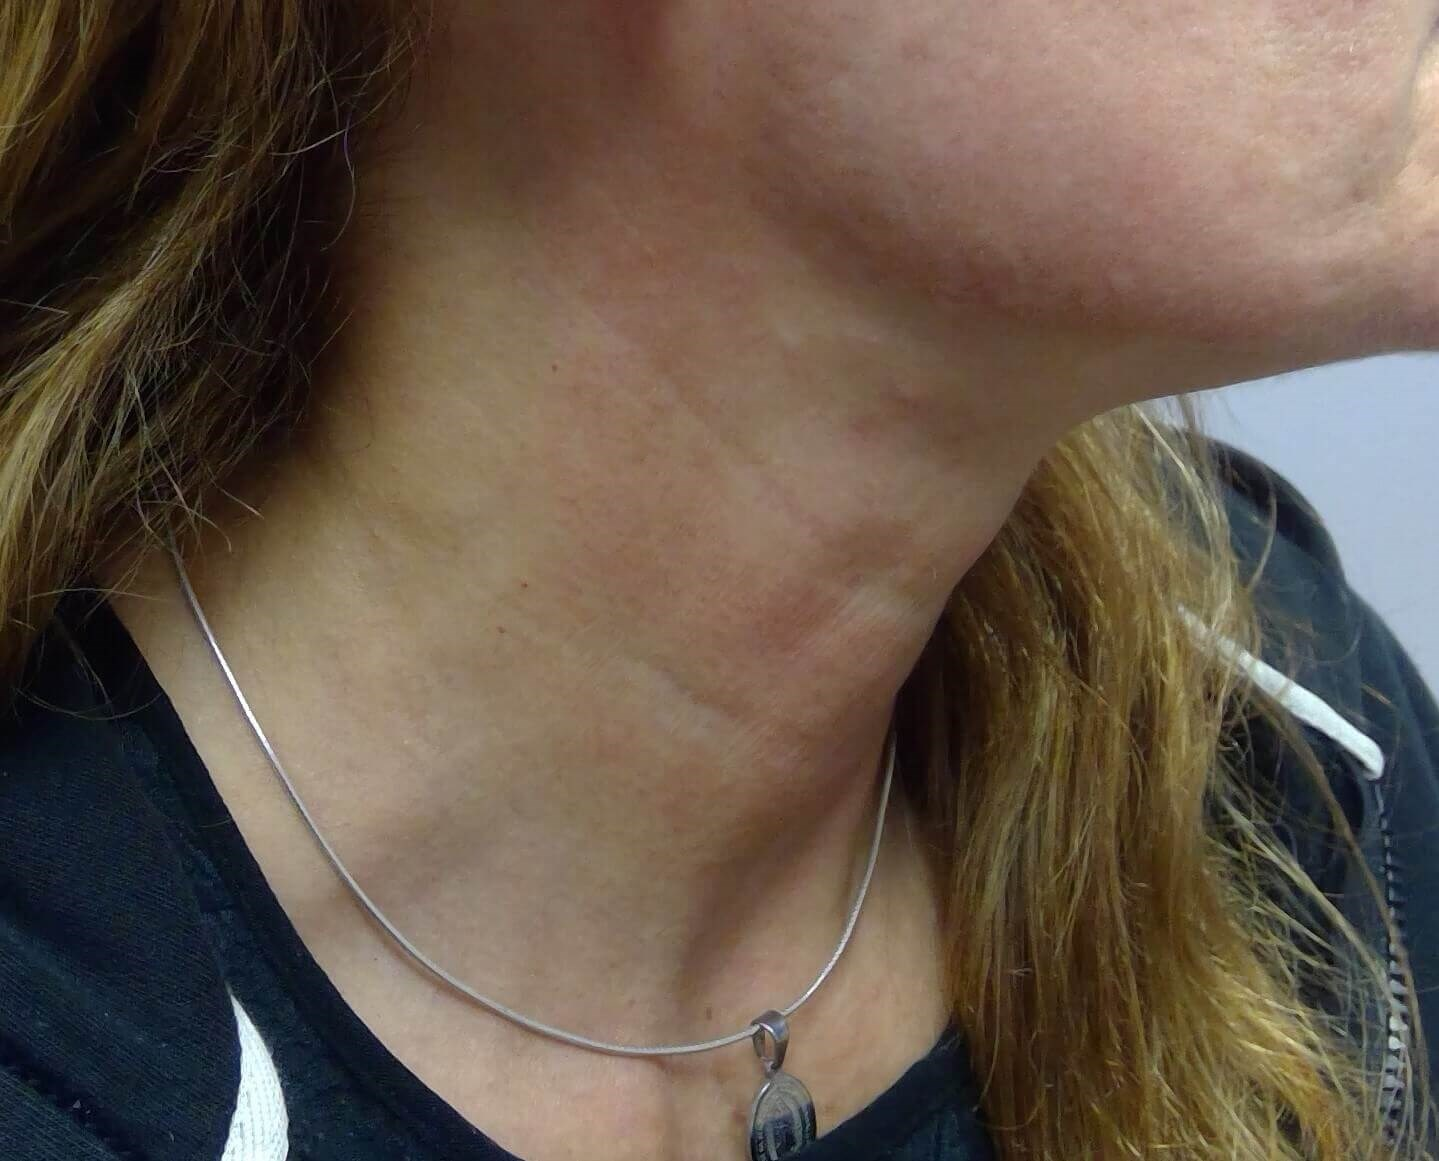 PDO Threadlift Neck After